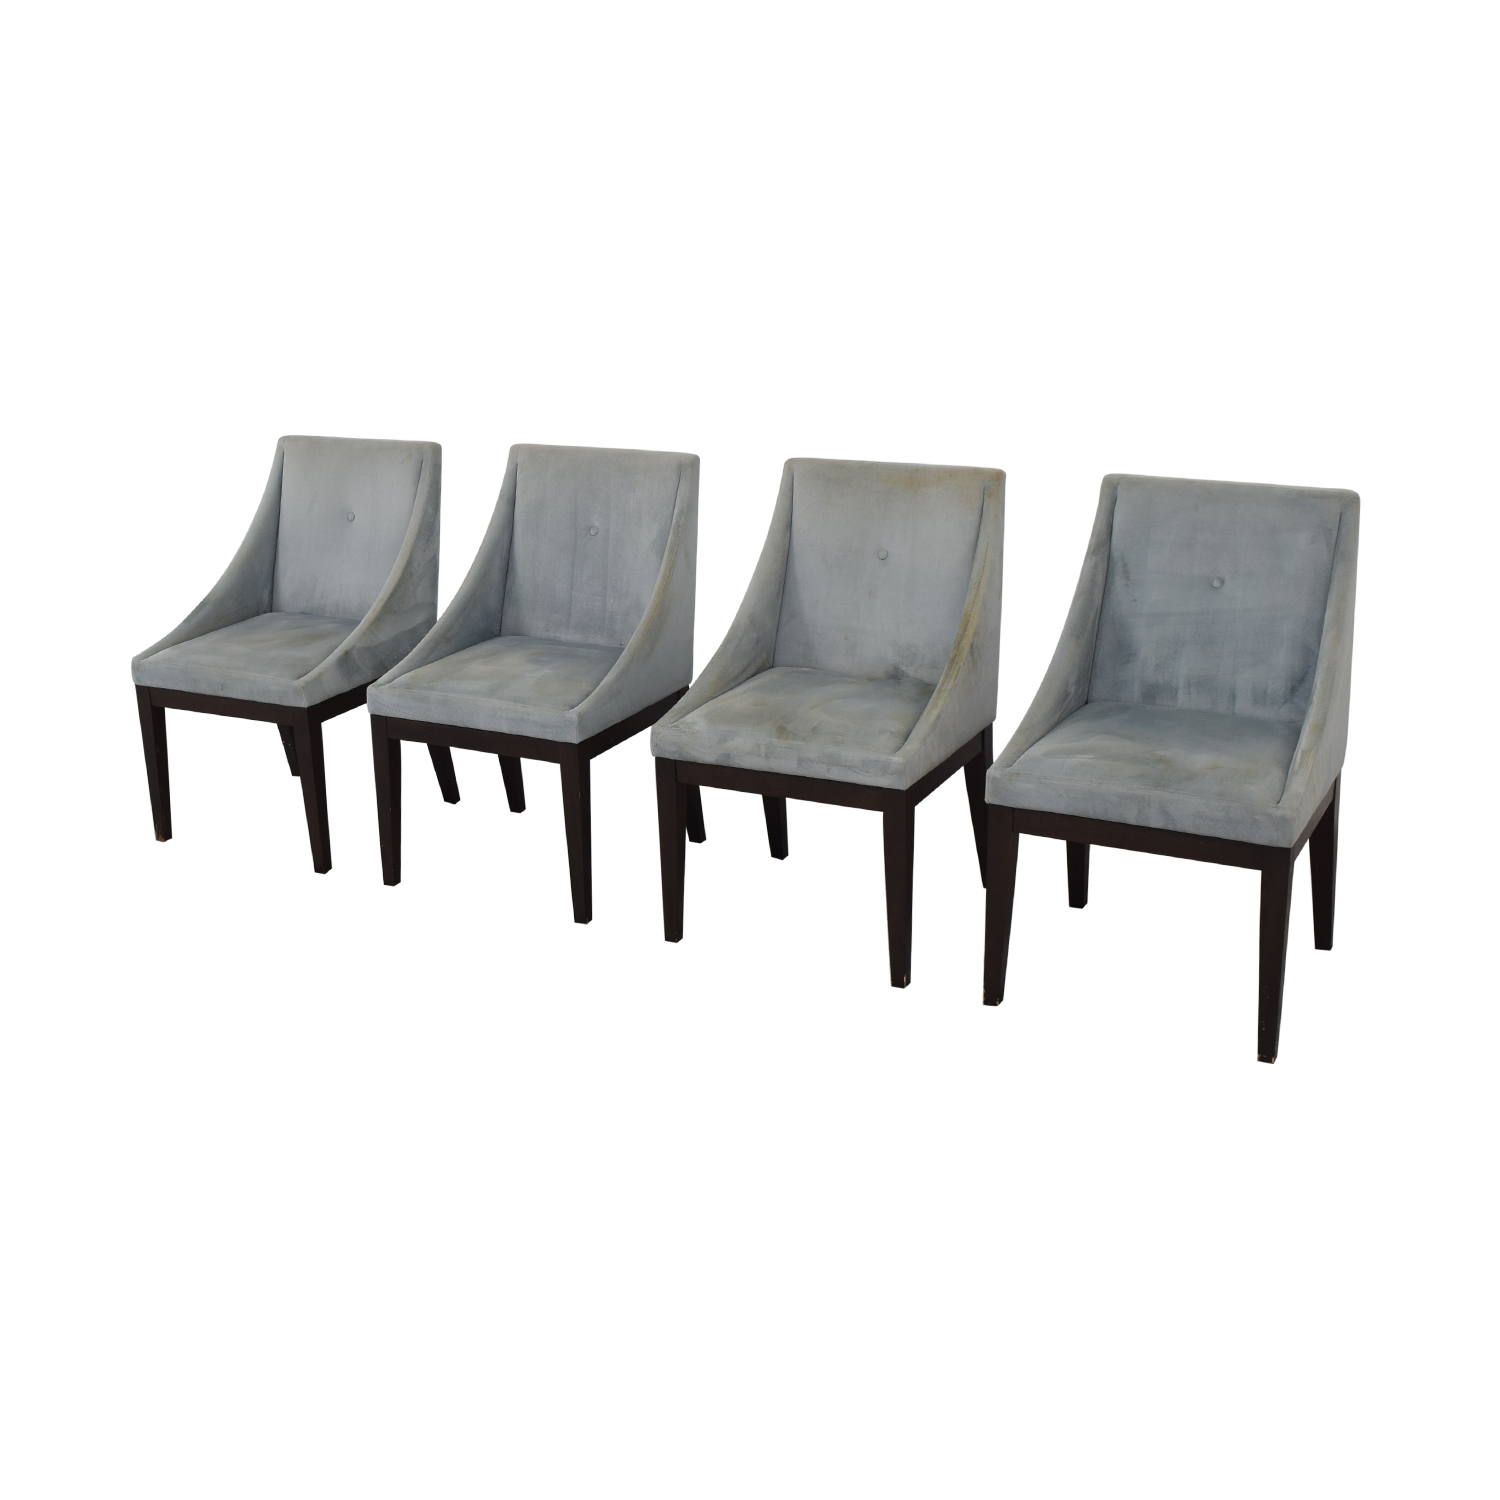 buy West Elm Upholstered Dining Chairs West Elm